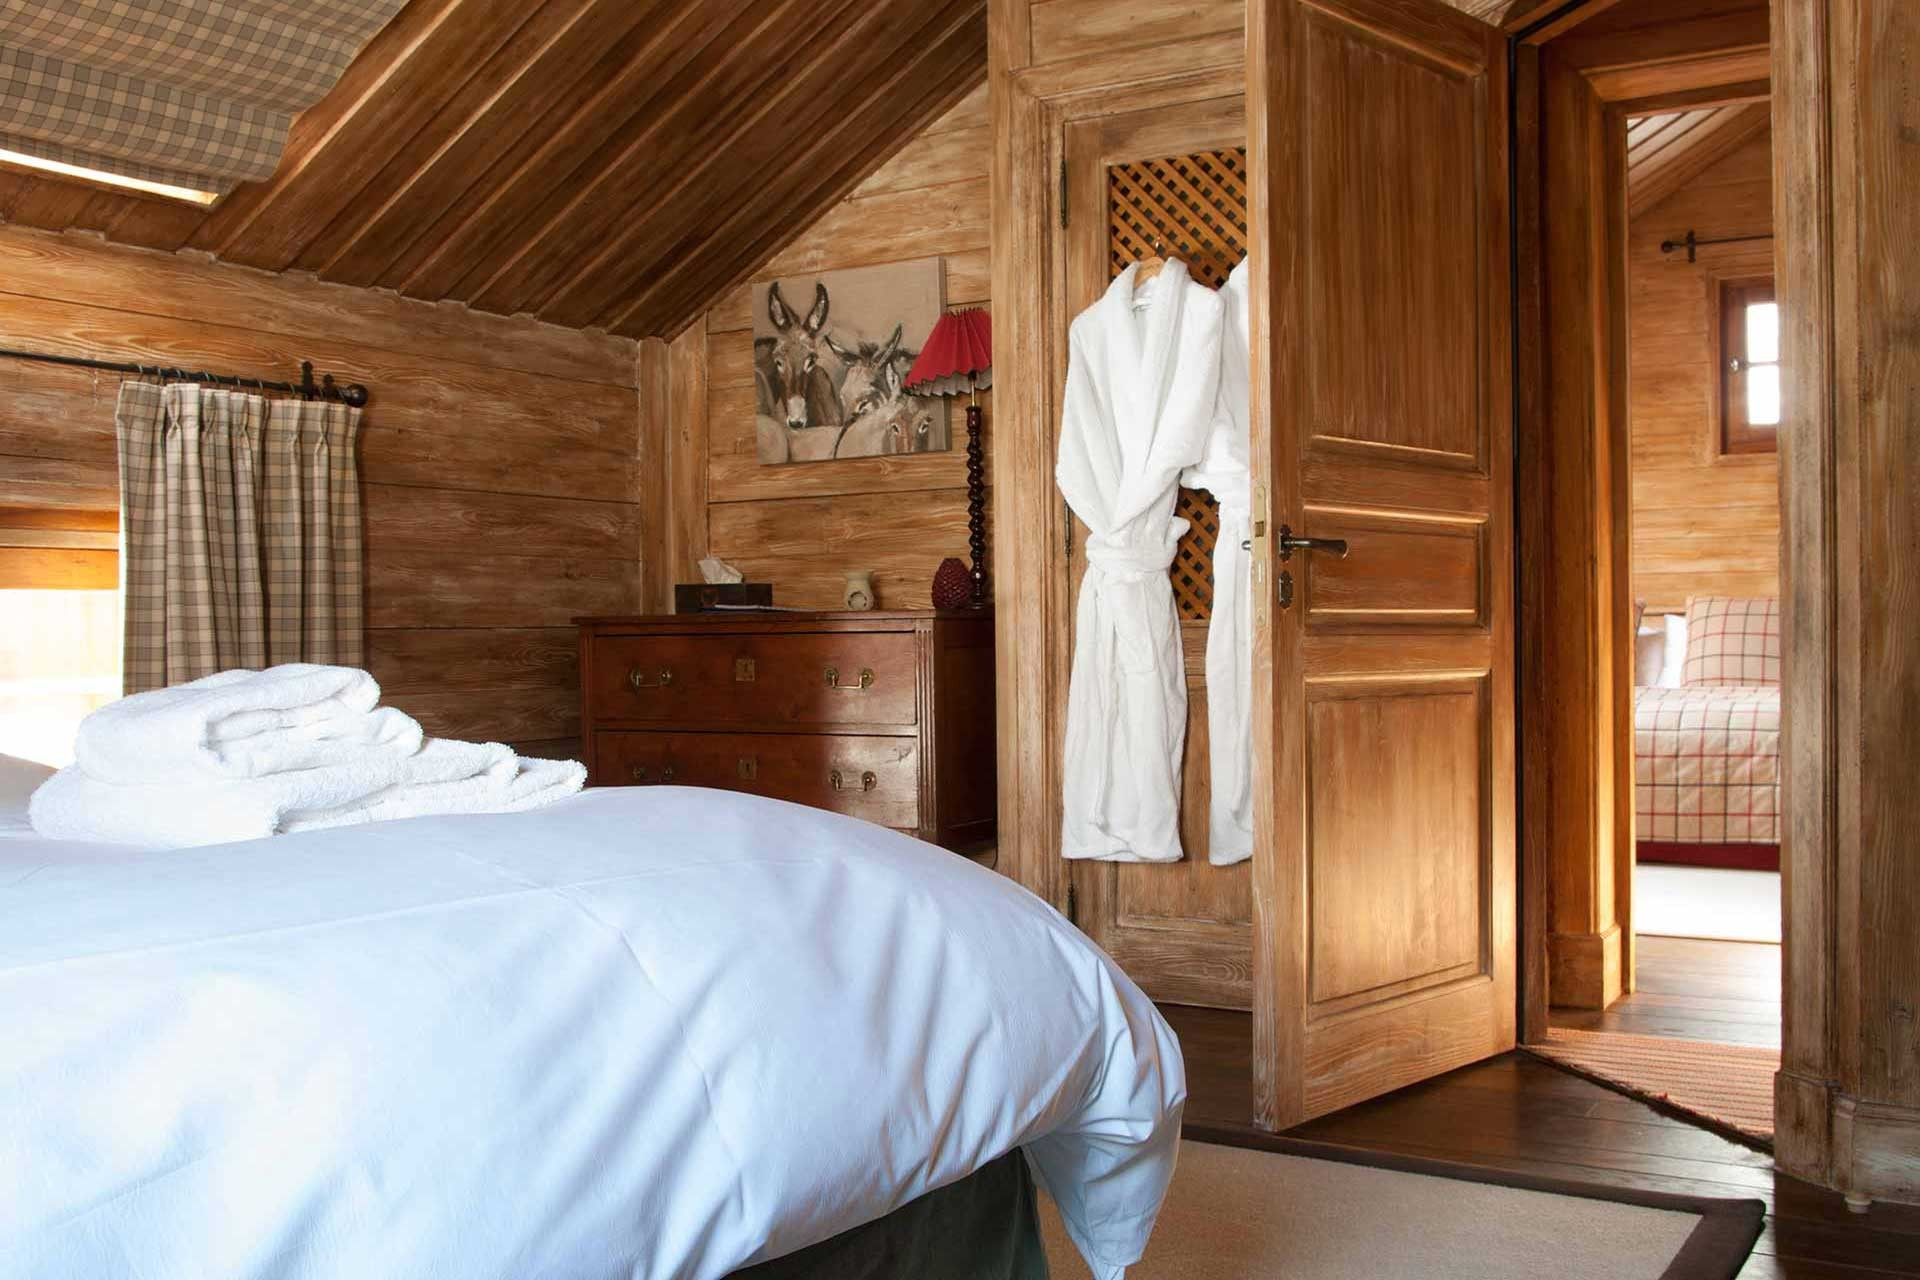 Méribel Location Chalet Luxe Ulomite Chambre 7